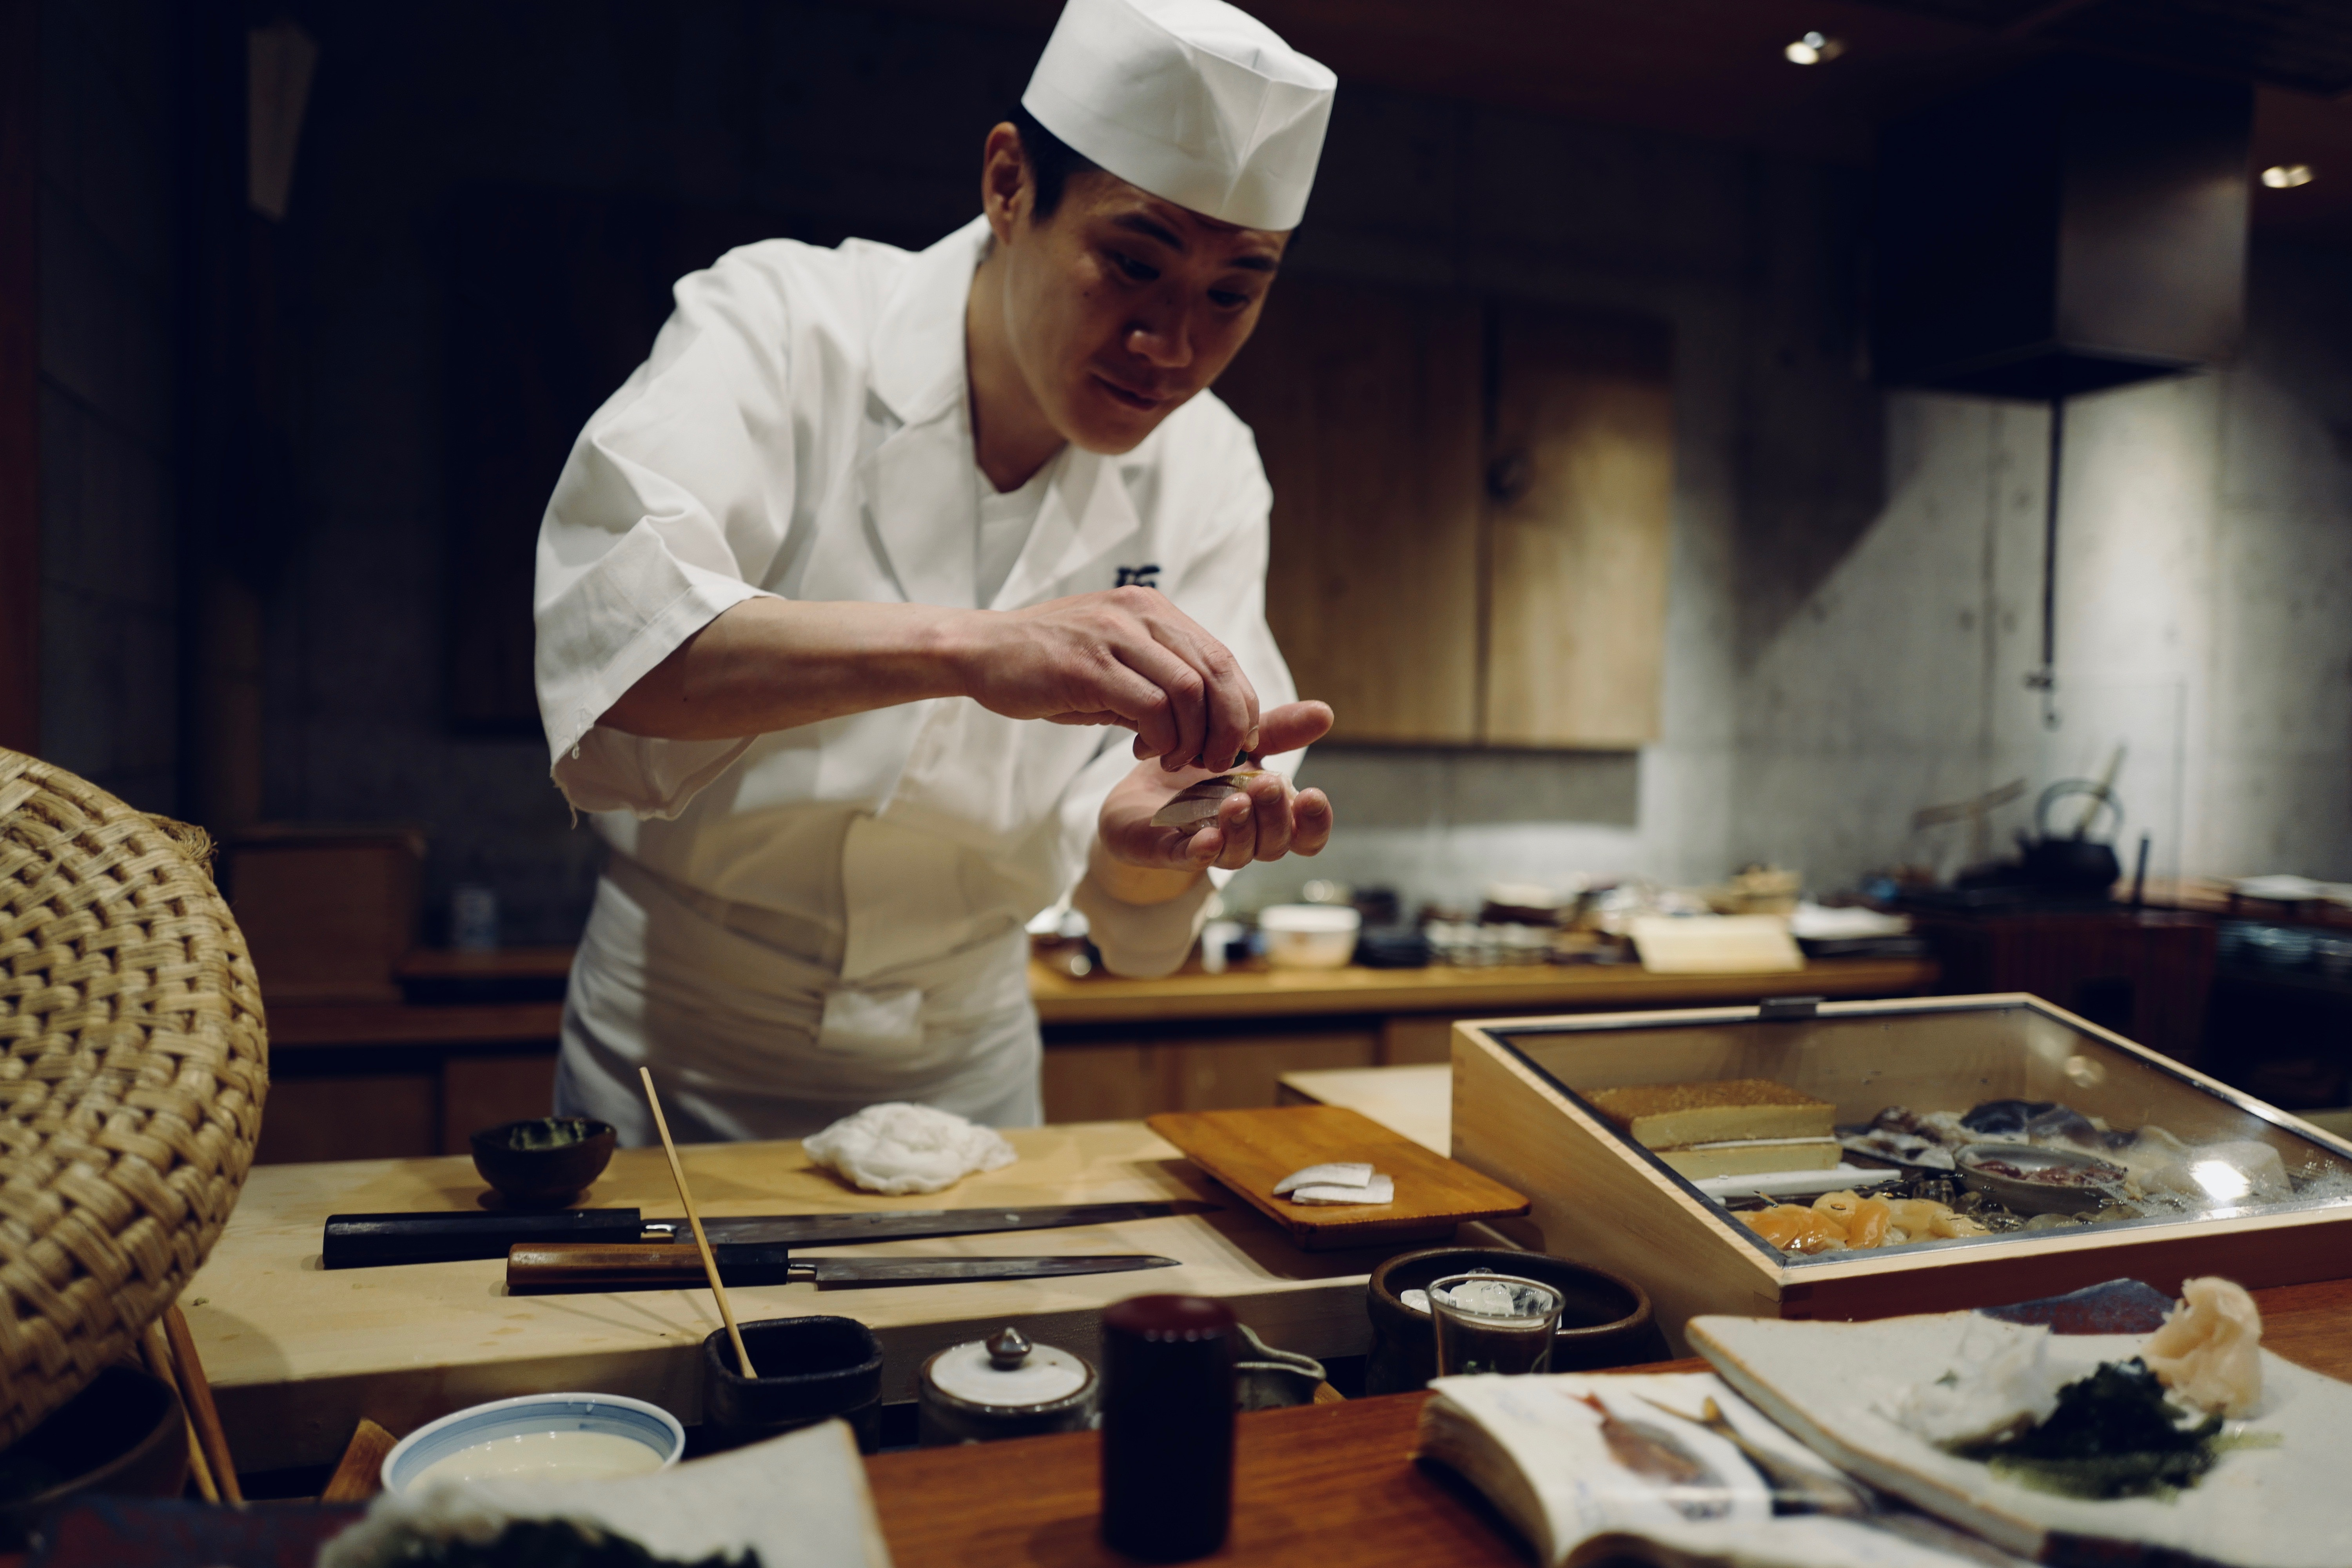 Image of a chef at work in Japan